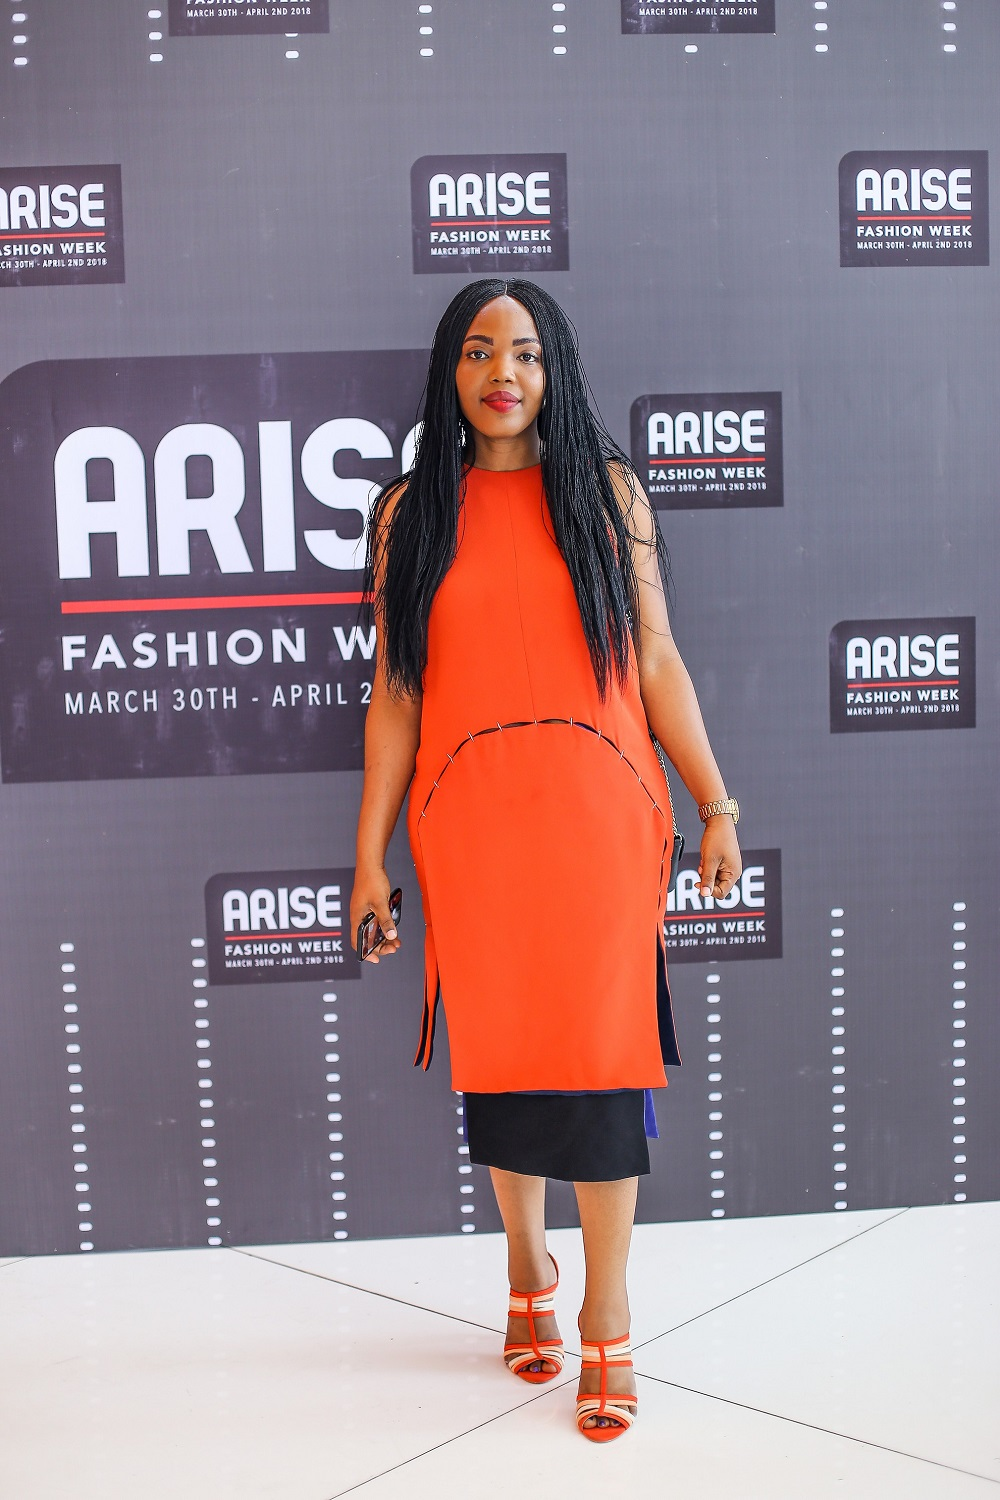 Fashion style Arise gallery magazine party for woman